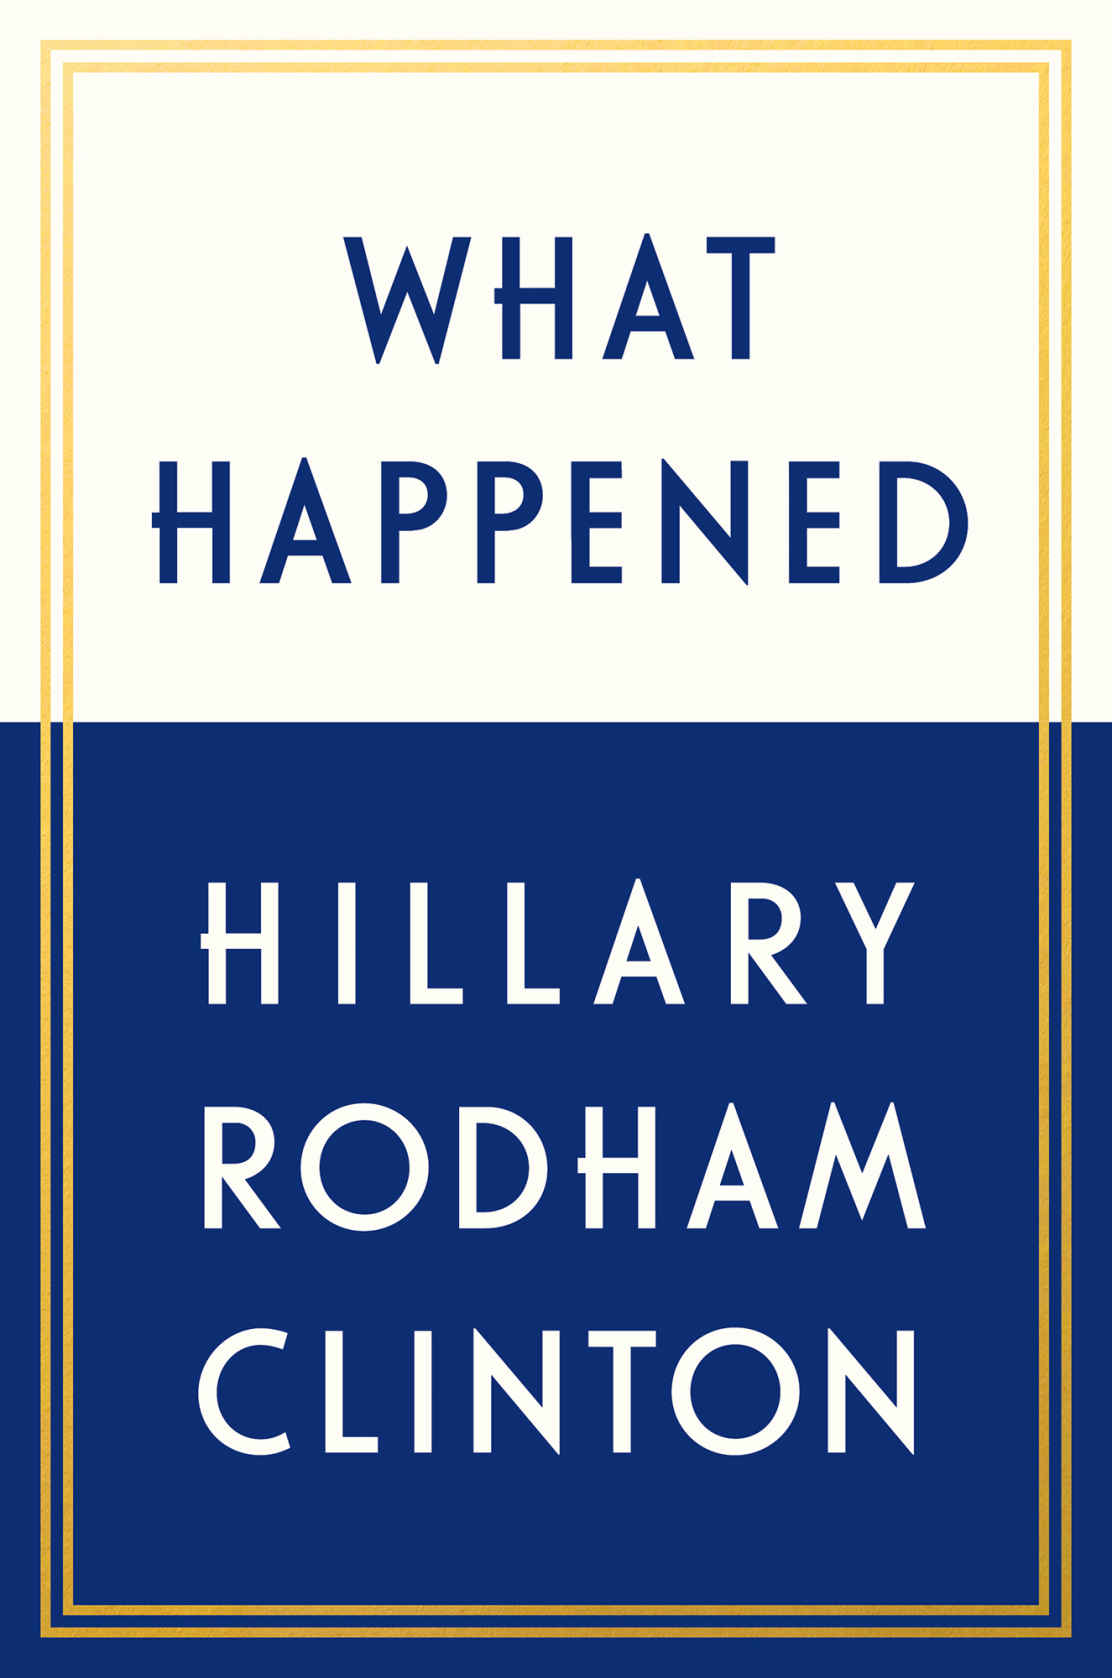 What Happened - Hillary Rodham Clinton [kindle] [mobi]